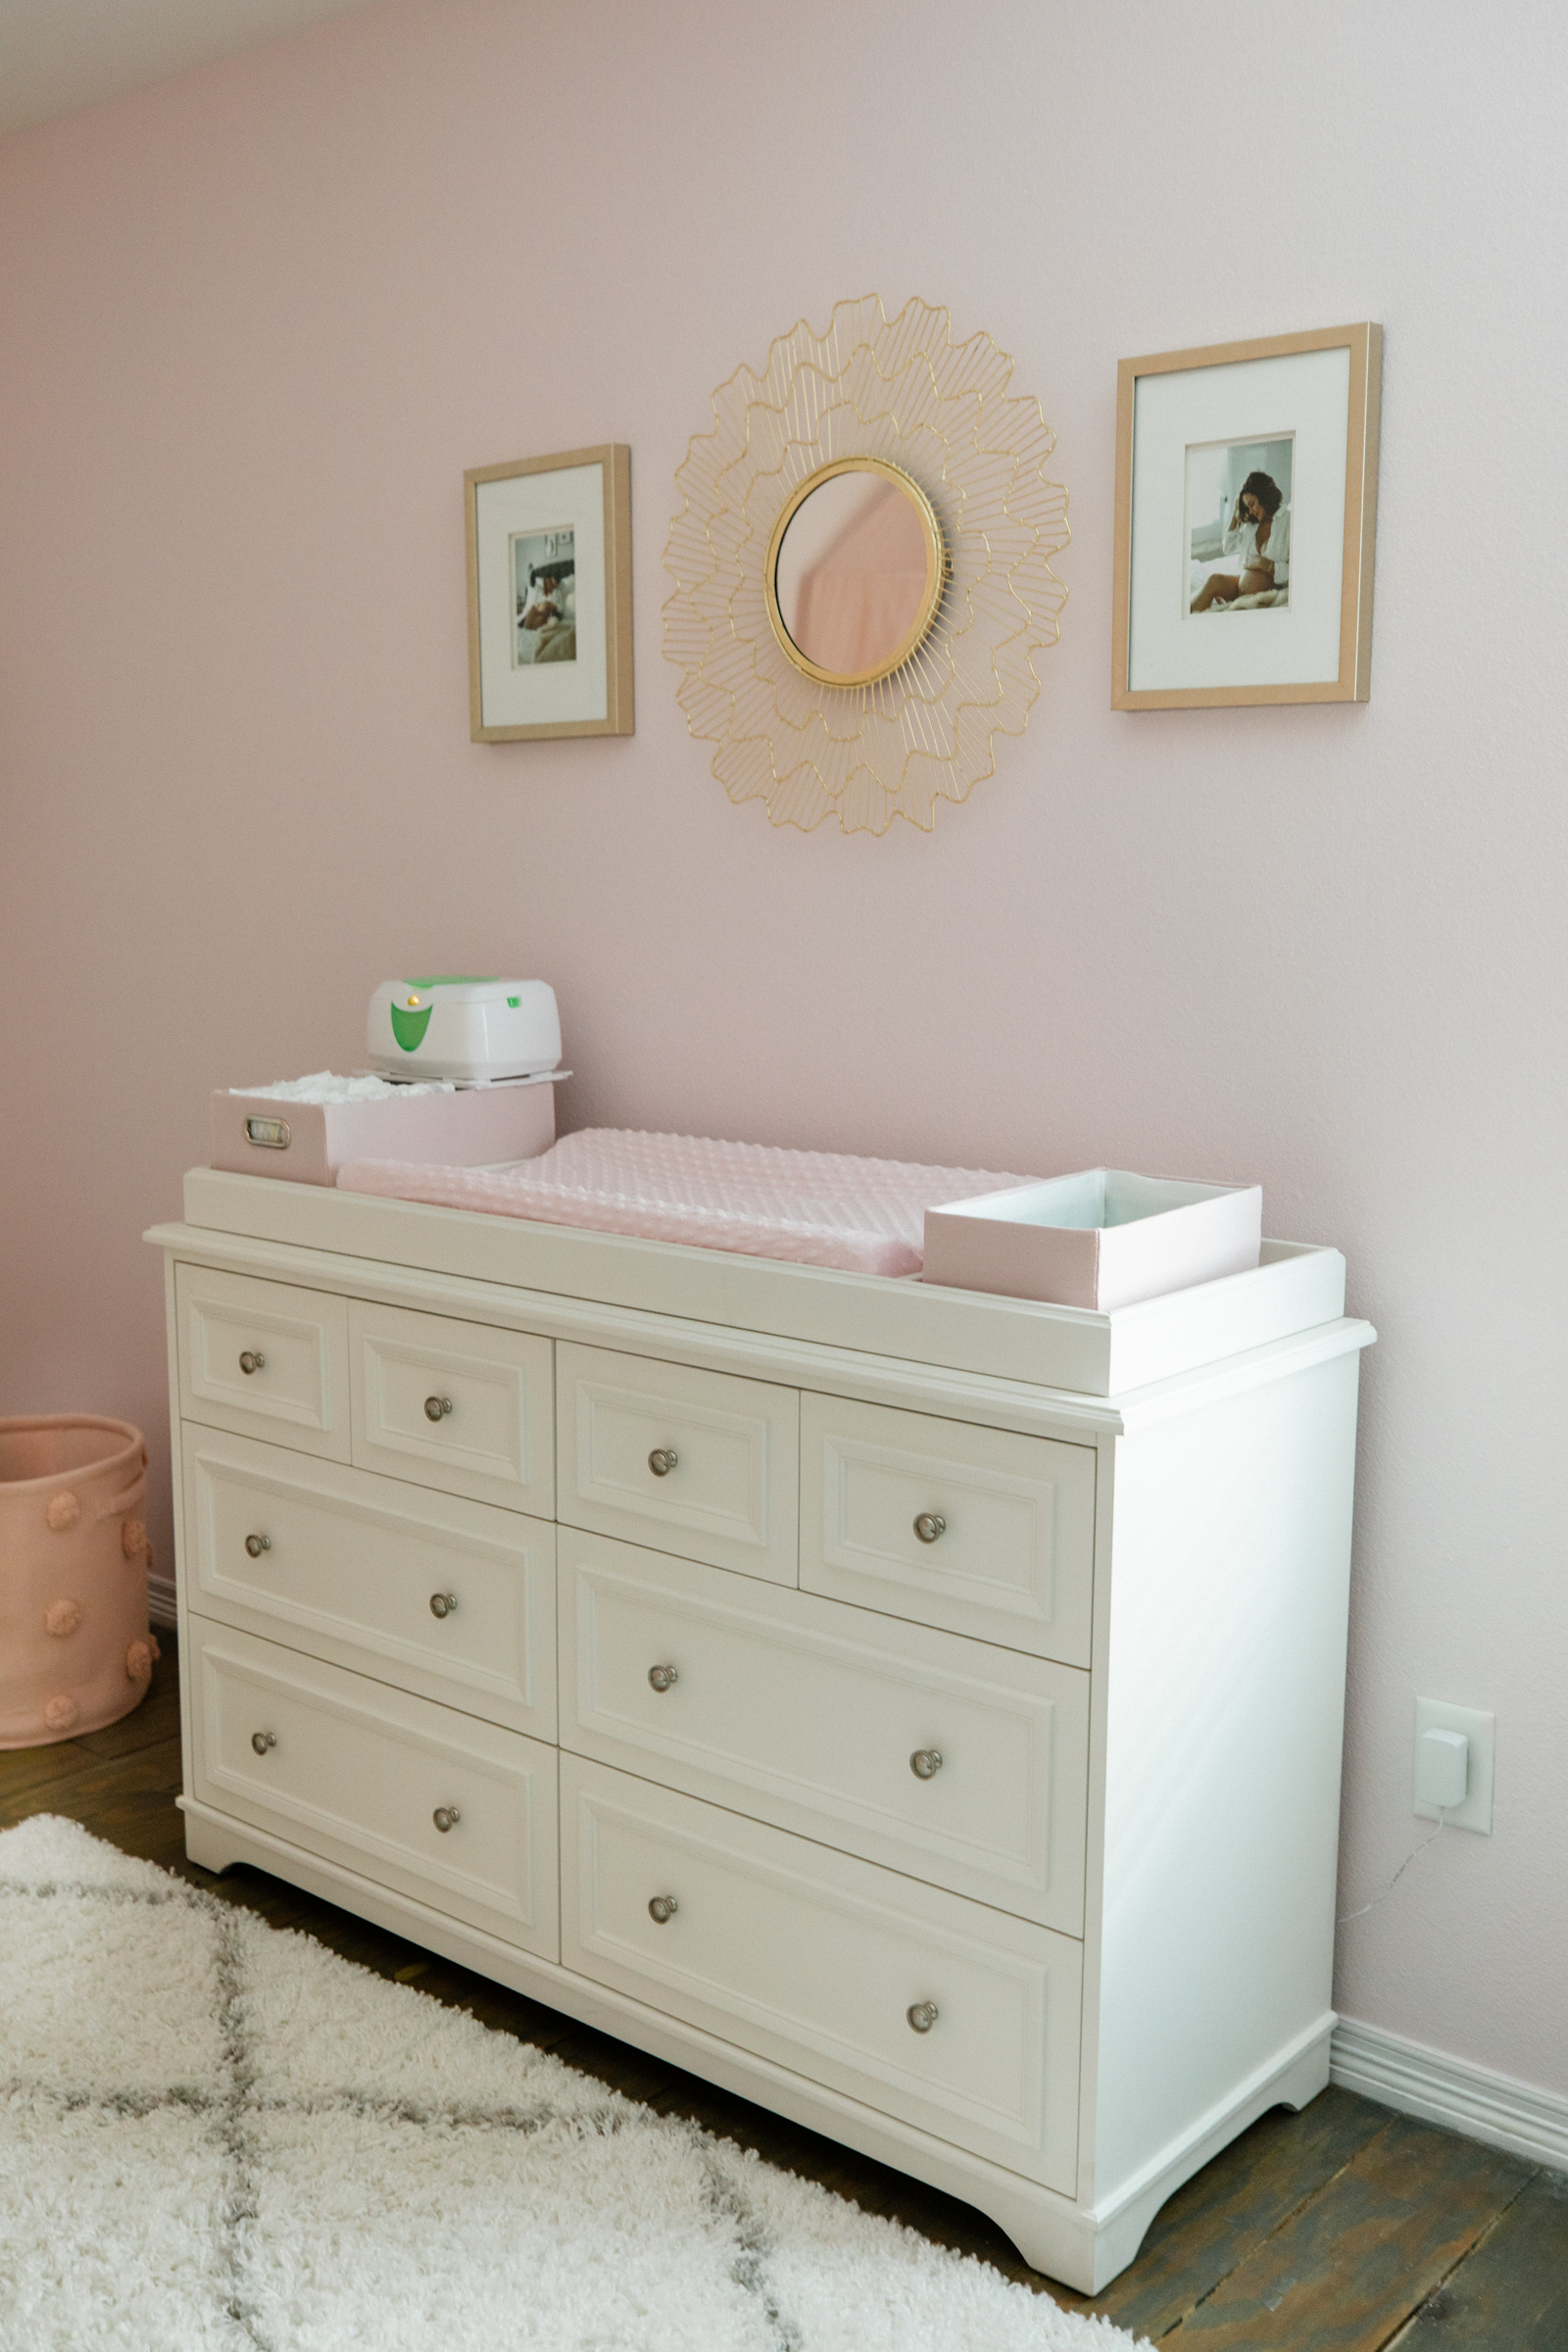 Houston lifestyle blogger Elly Brown shares why she chose the Filmore extra wide dresser